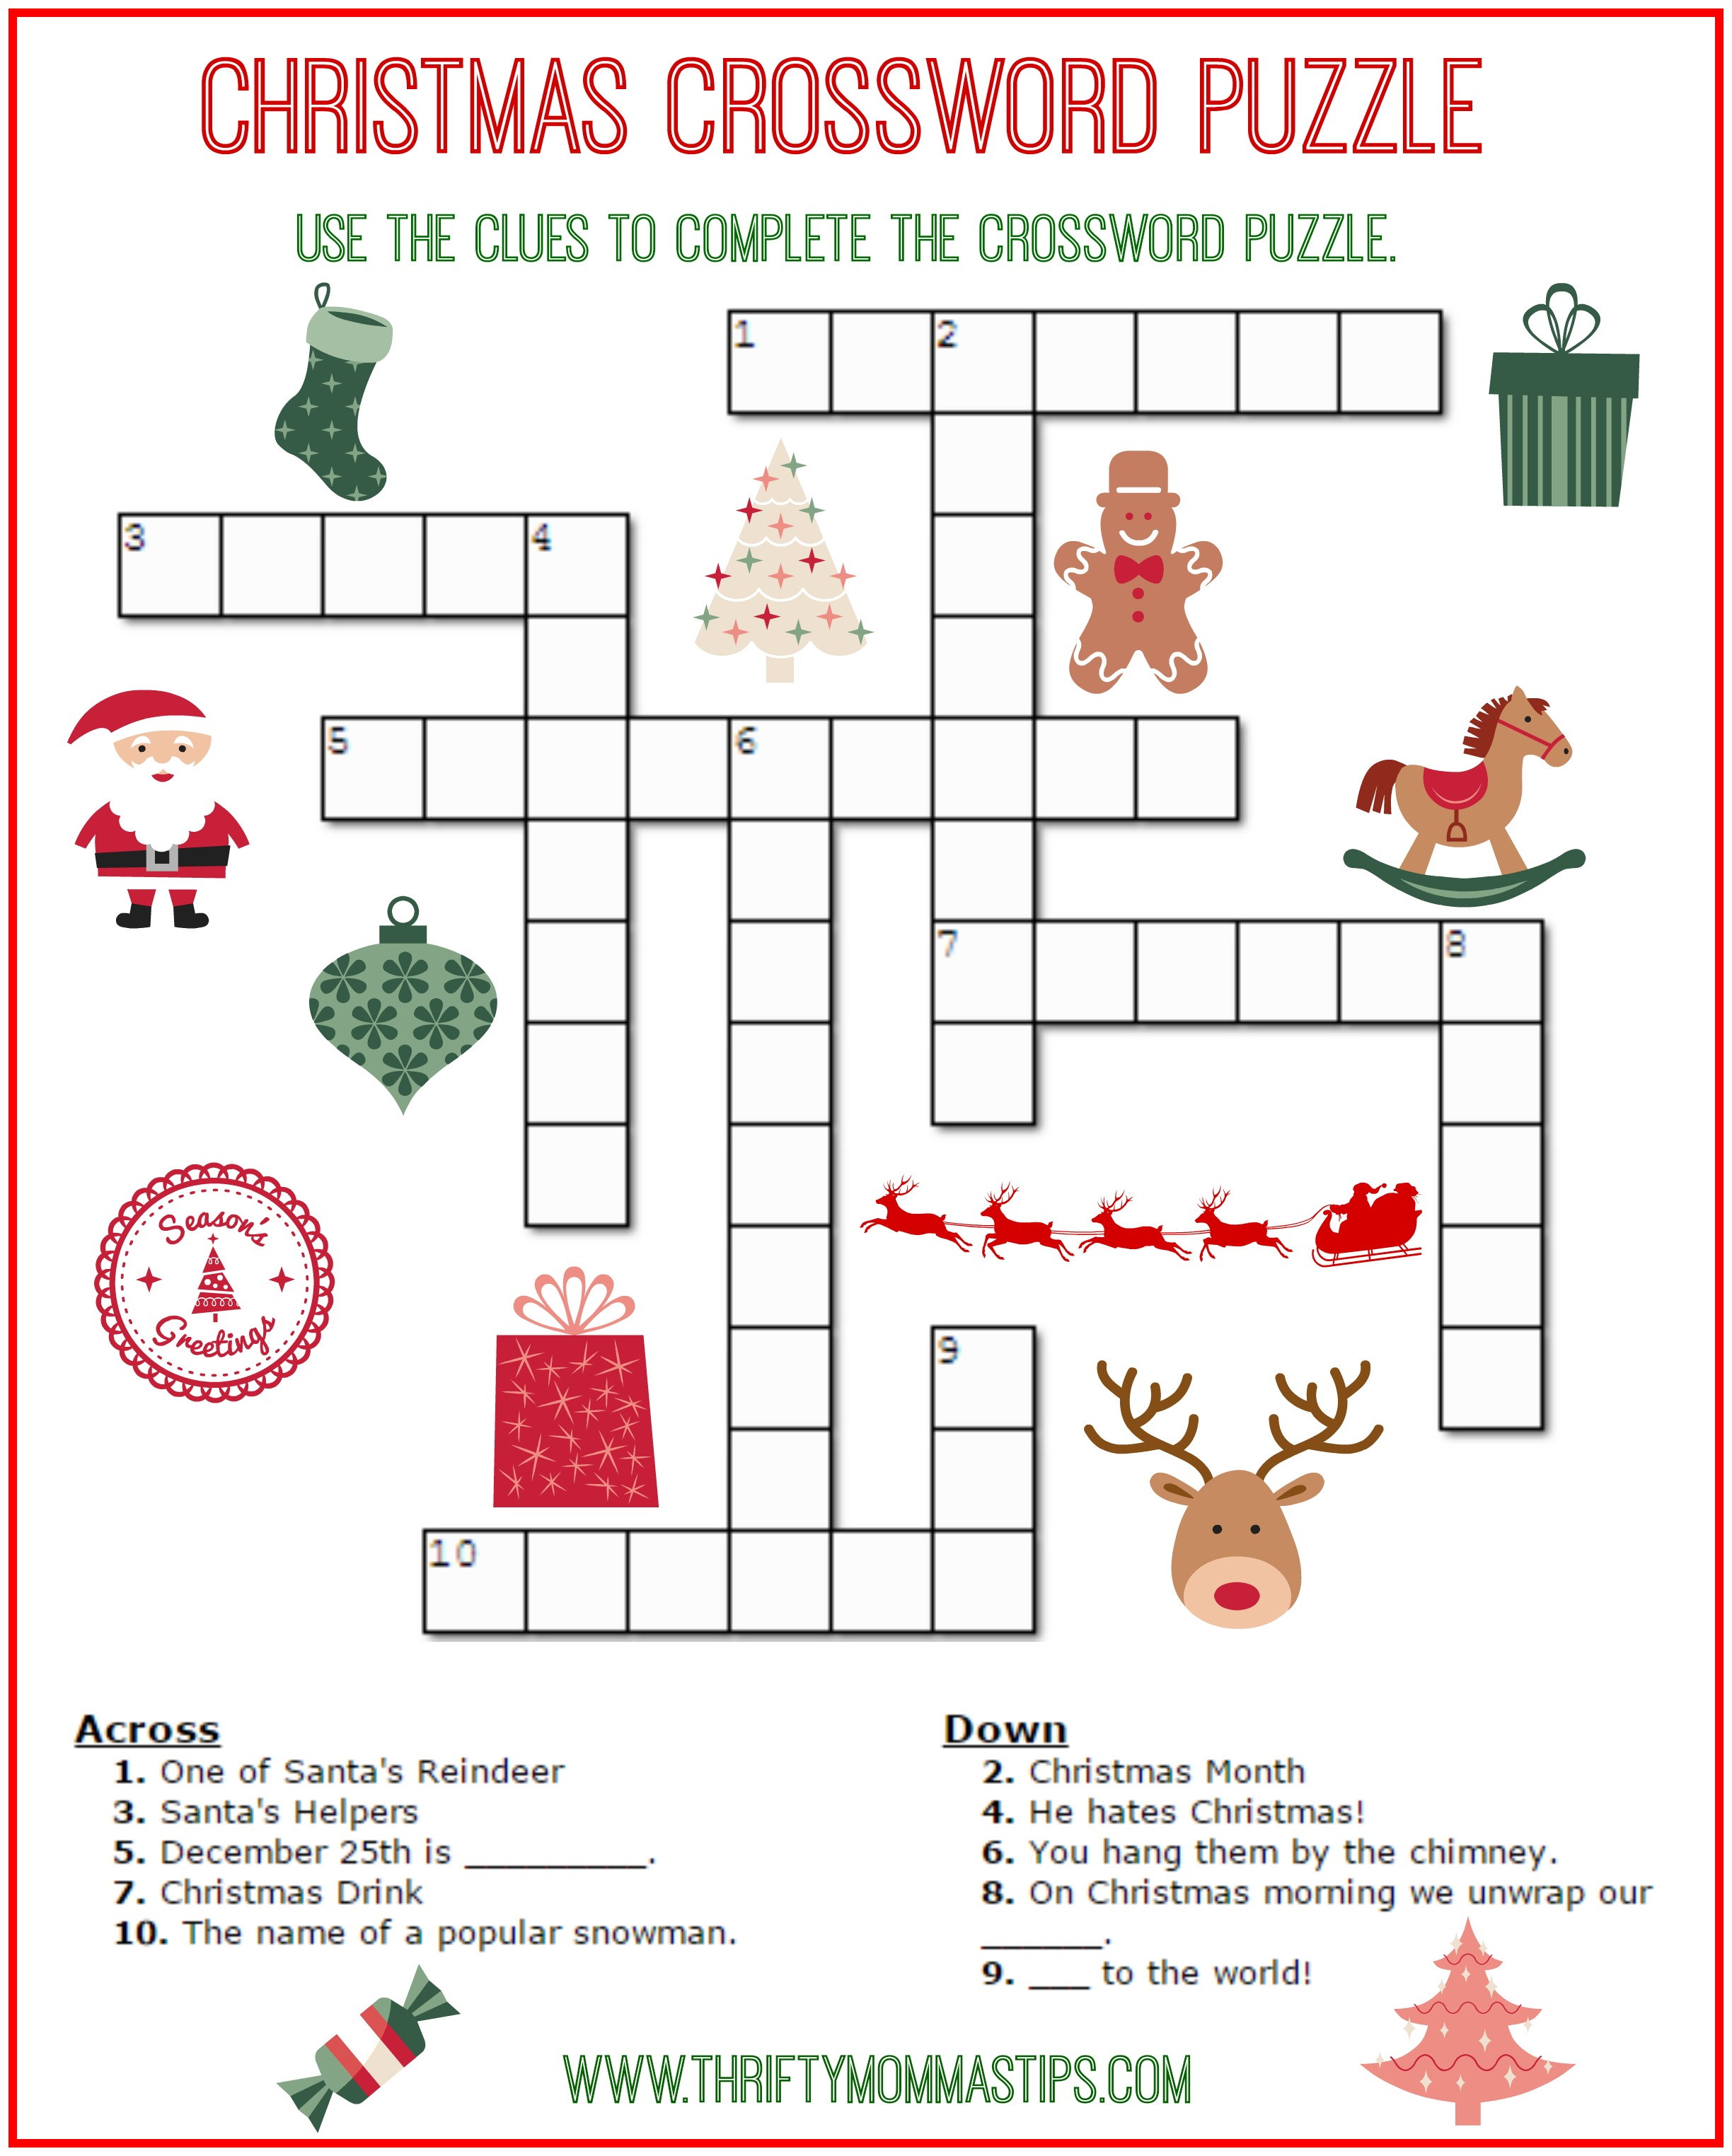 christmas crossword puzzle printable thrifty momma 39 s tips. Black Bedroom Furniture Sets. Home Design Ideas